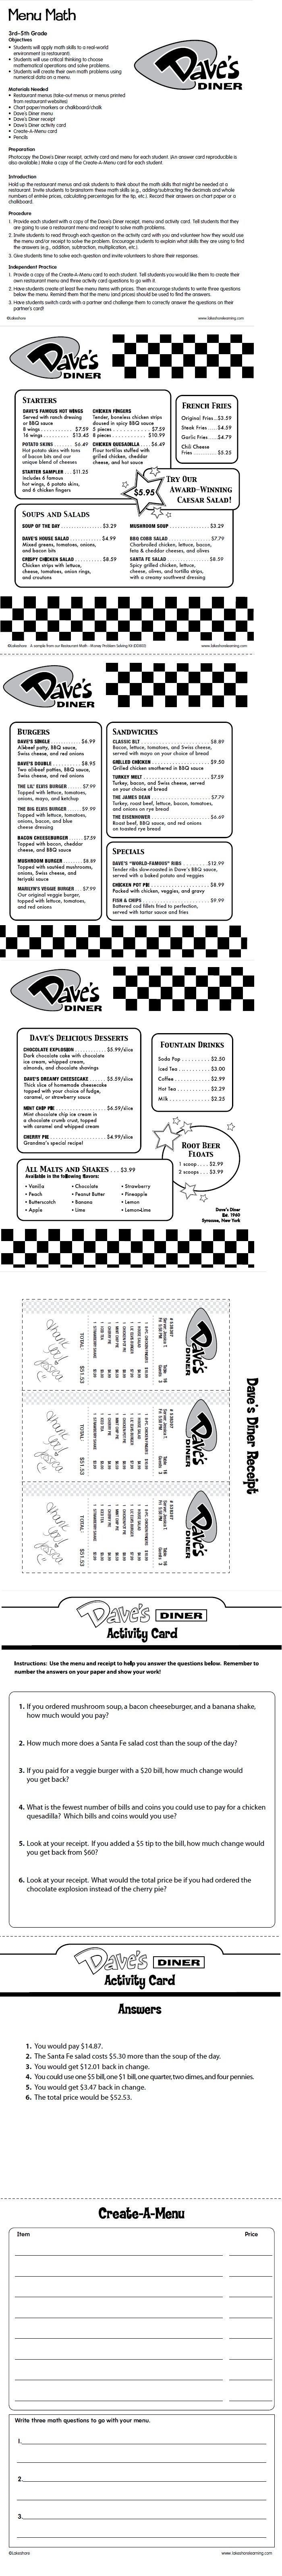 Menu Math Lesson Plan From Lakeshore Learning Middle School Math Education Math Math Classroom [ 6393 x 700 Pixel ]